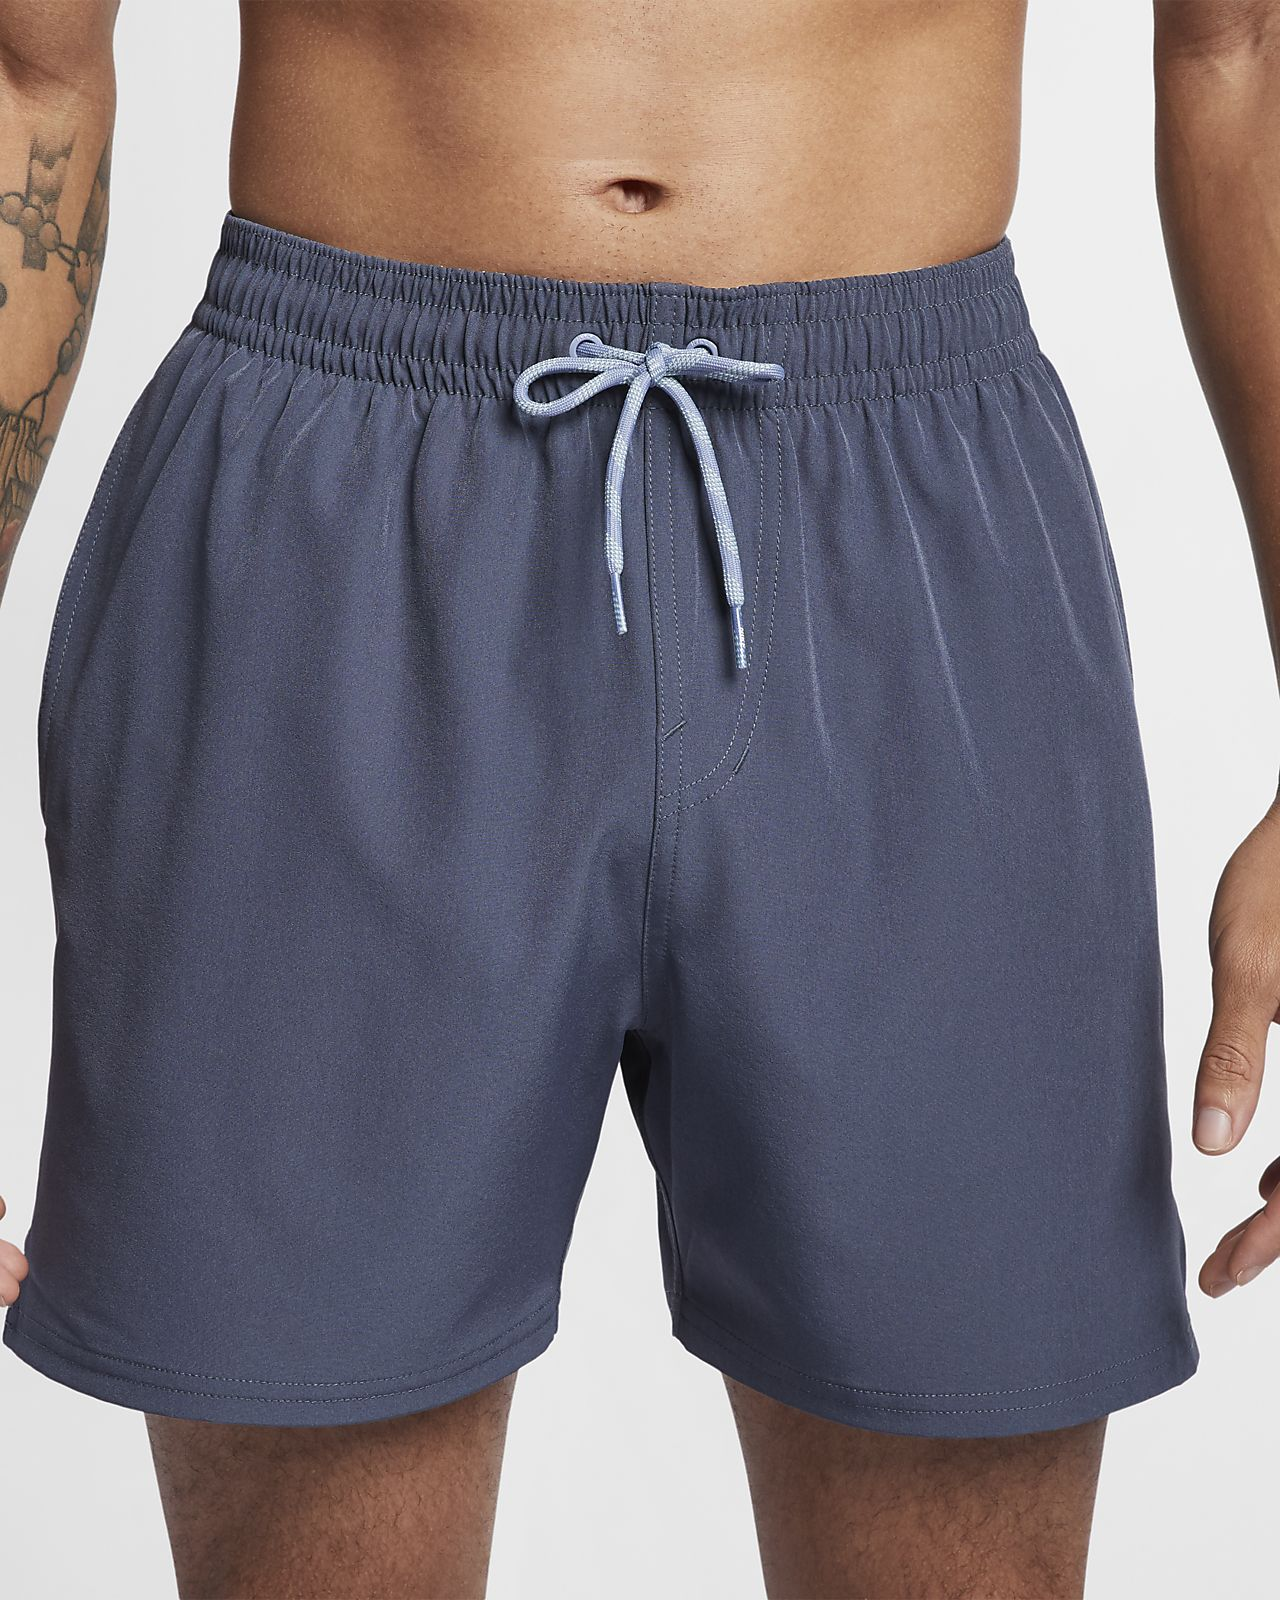 nike swim trunks for women